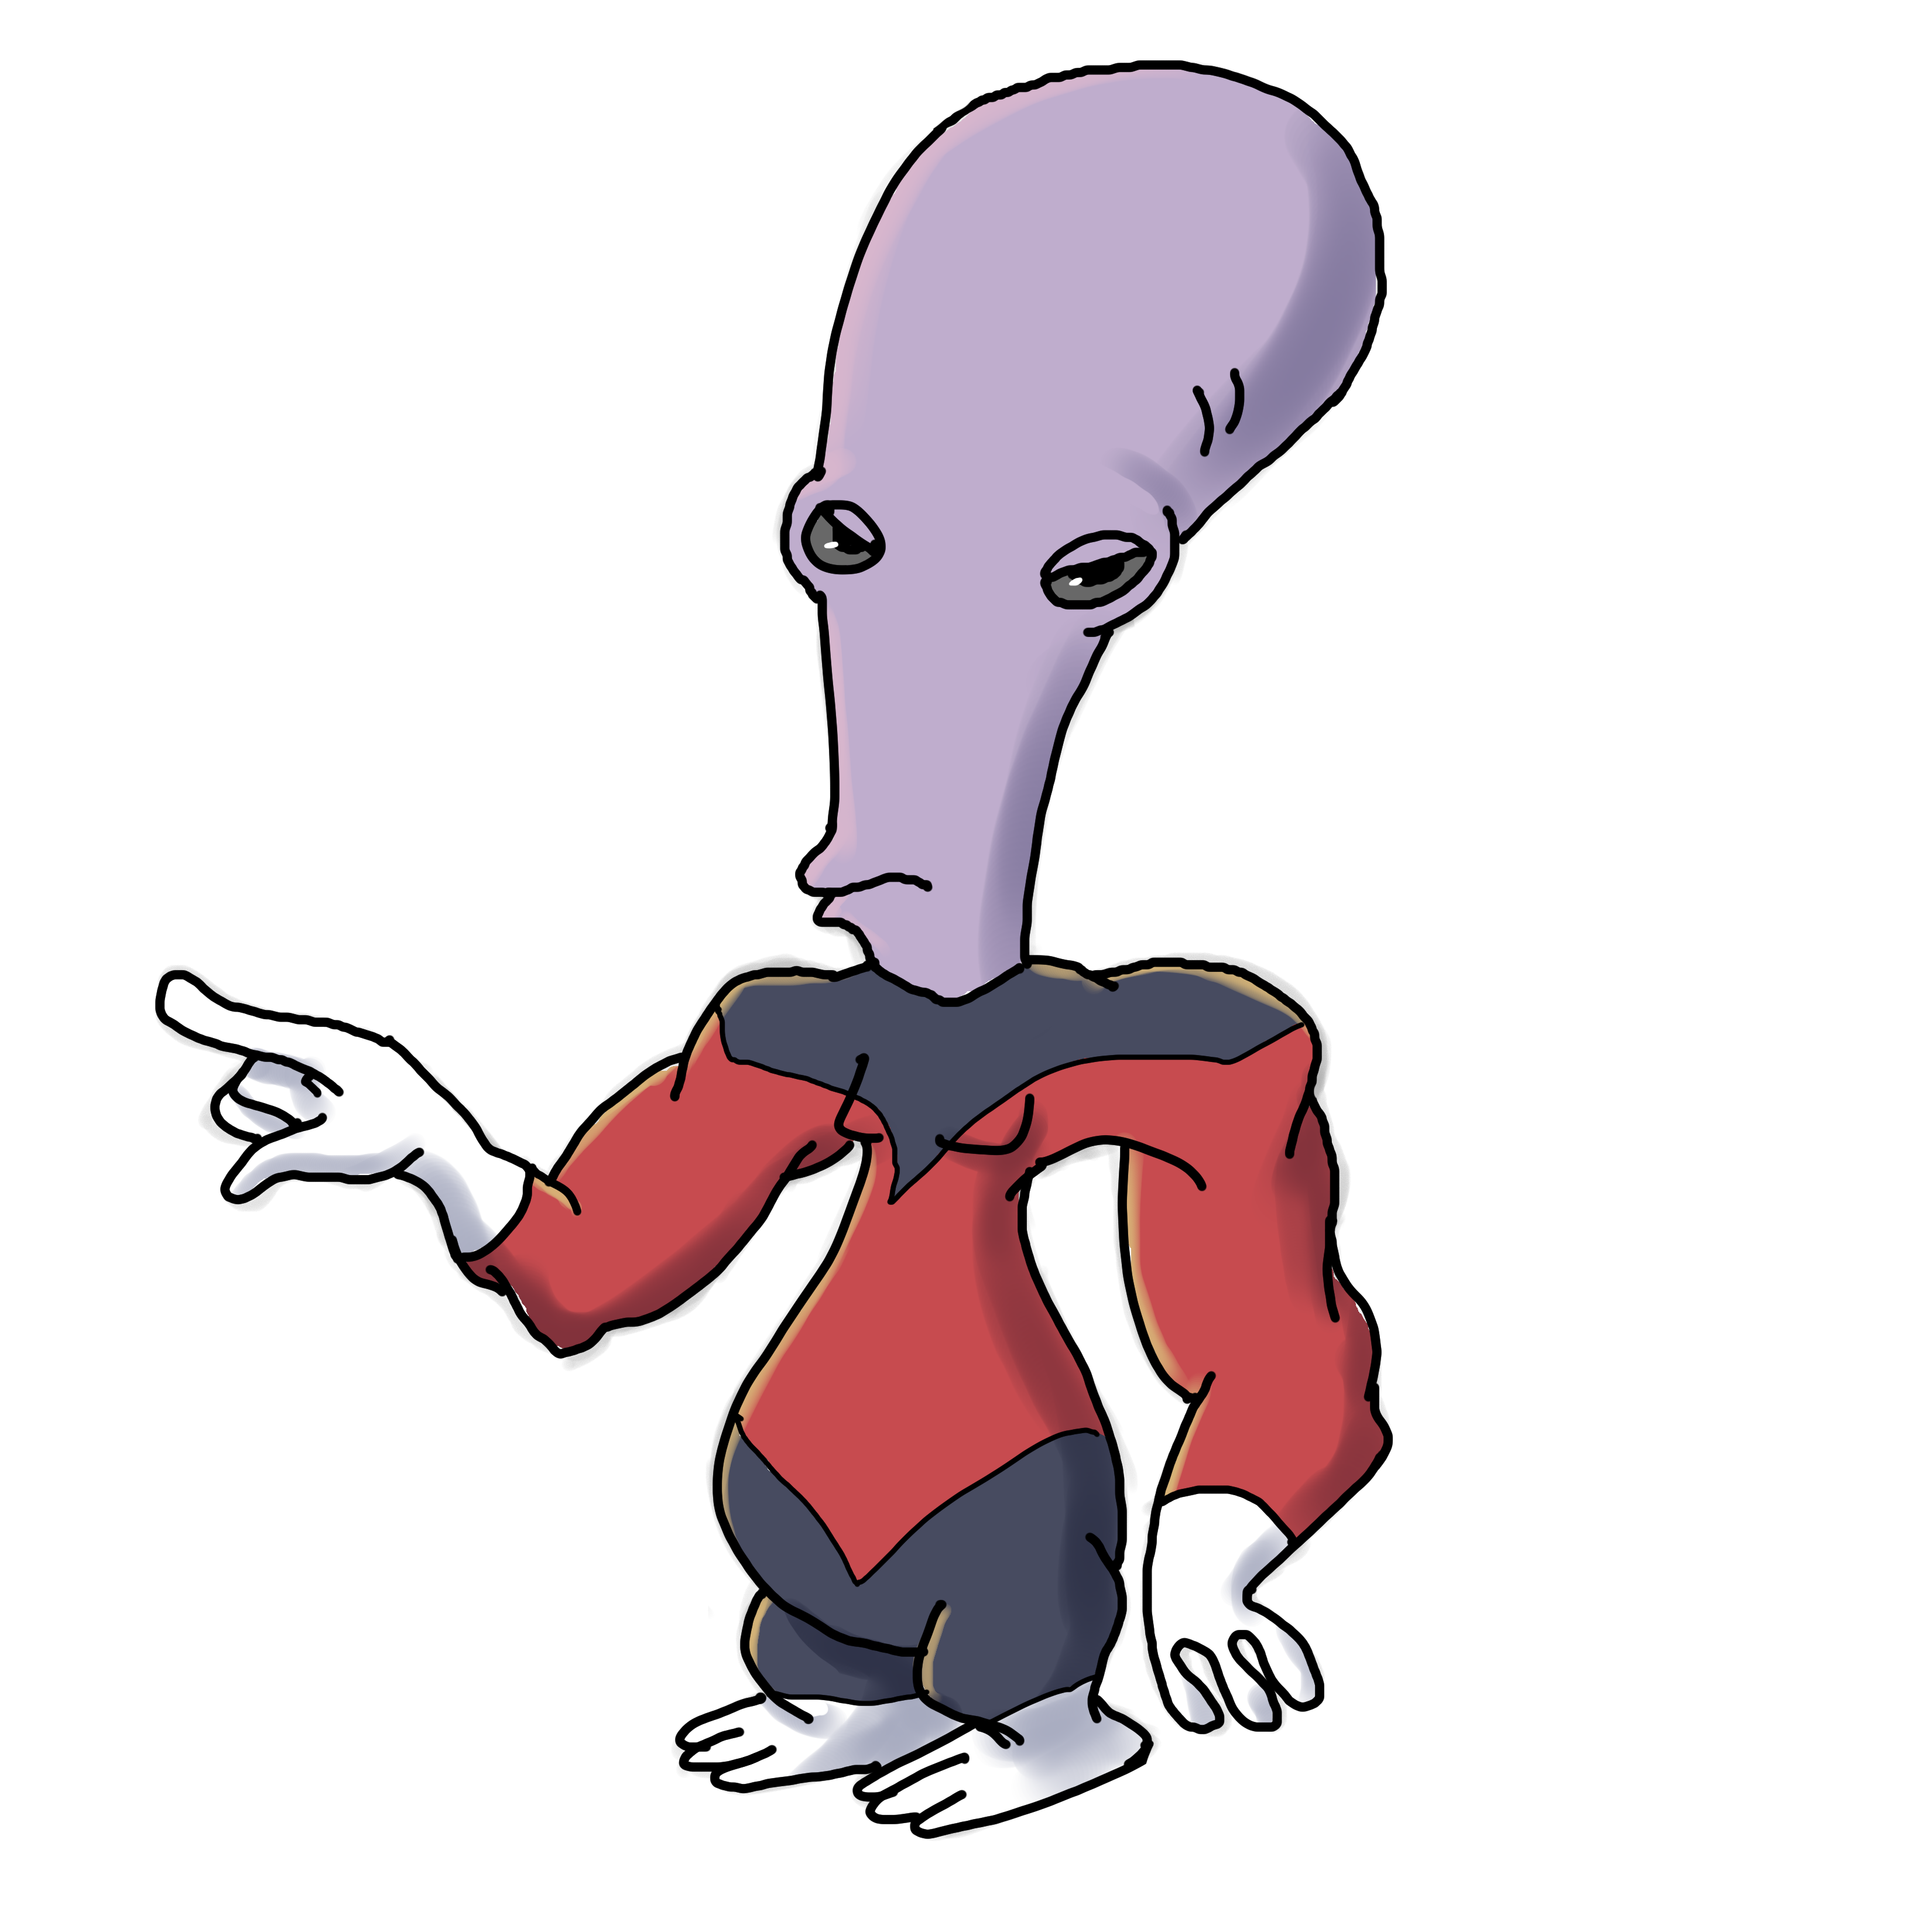 Roger american dad png. People constantly asked for